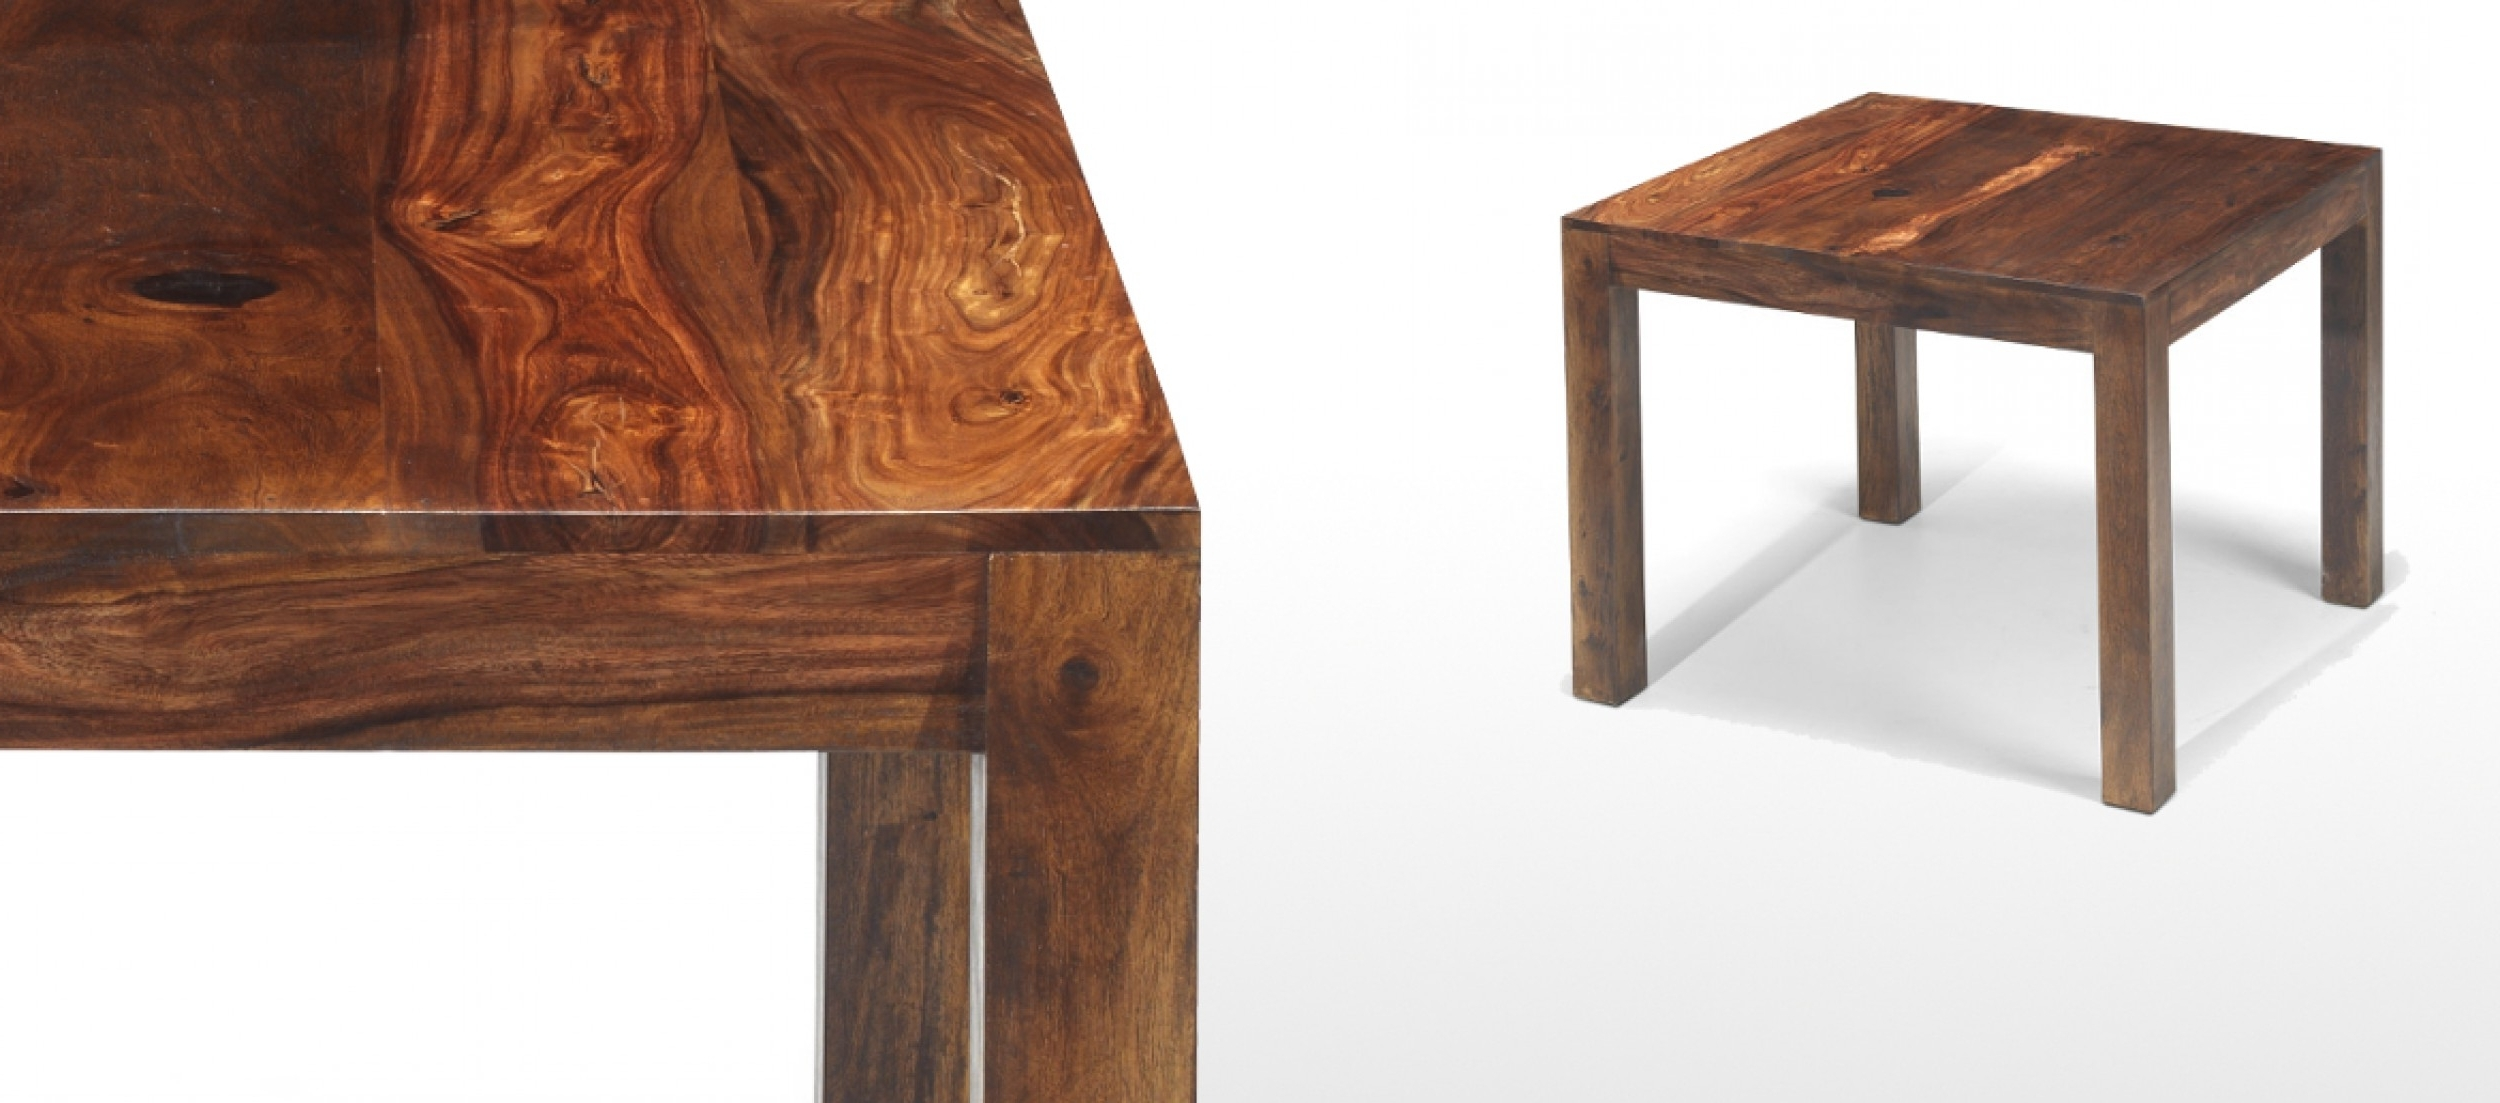 Quercus Living In Recent Sheesham Dining Tables (View 11 of 25)